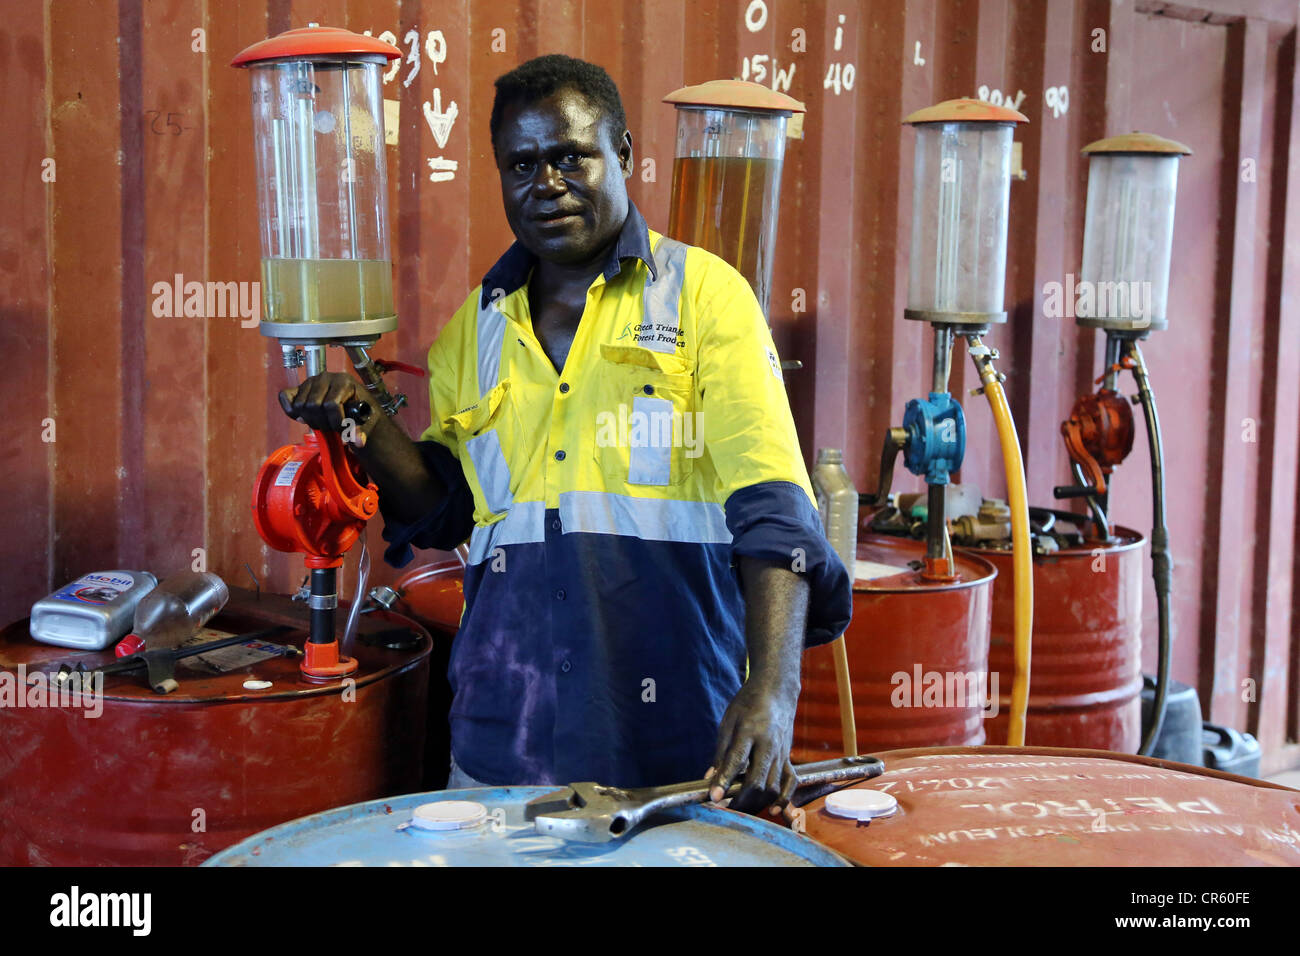 Fuel station owner stands between petrol barrels, Arawa, Autonomous Region of Bougainville, Papua New Guinea Stock Photo